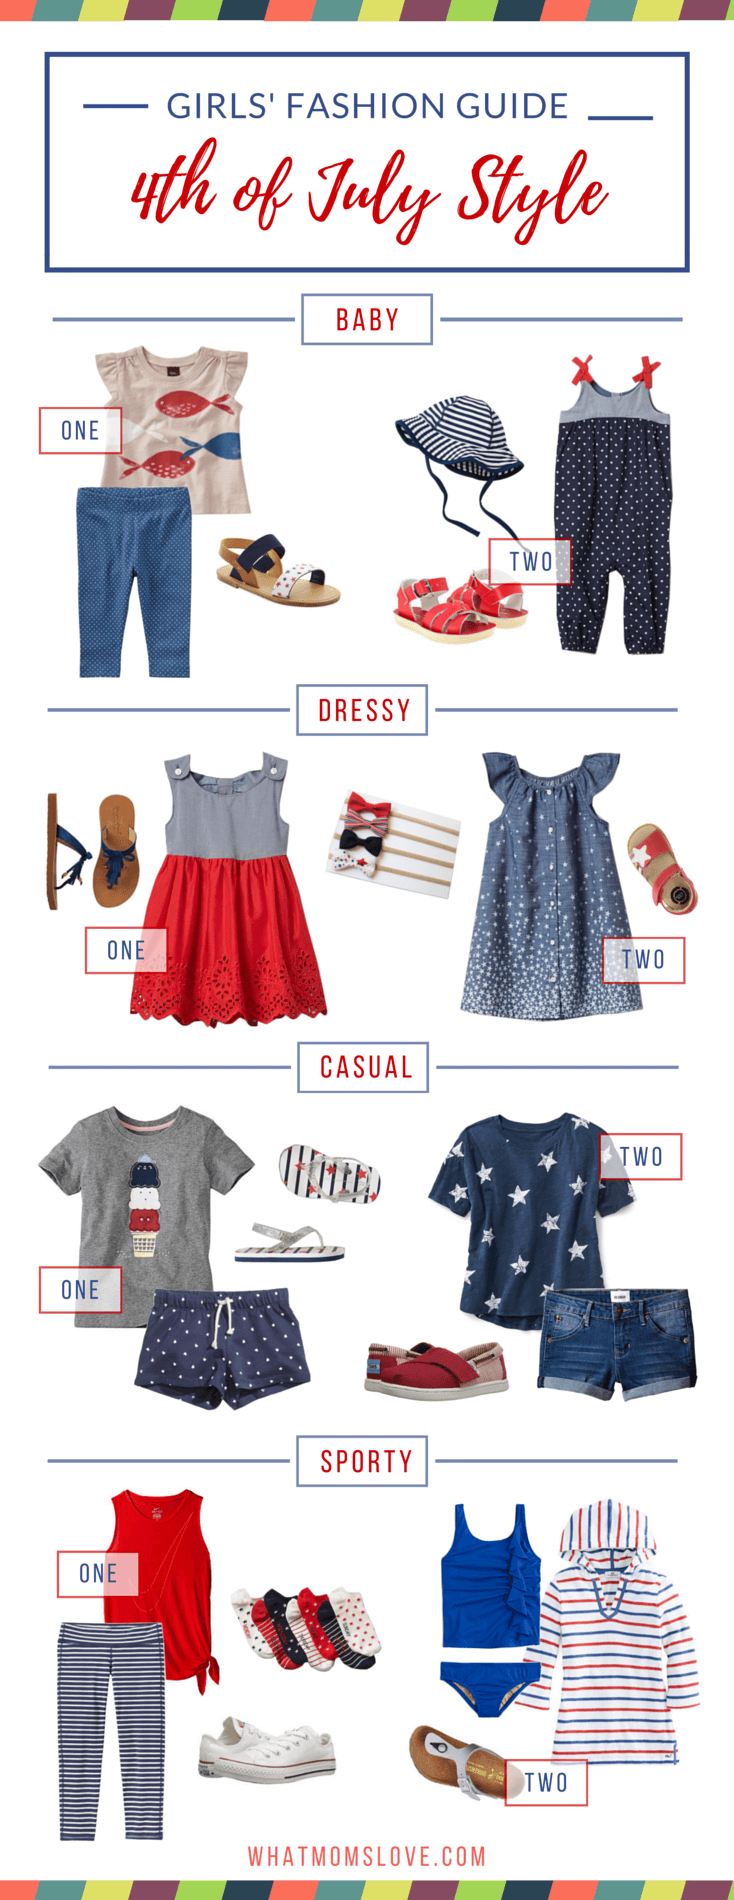 Stylish Girls' Fashion Outfits to Wear to Celebrate 4th of July